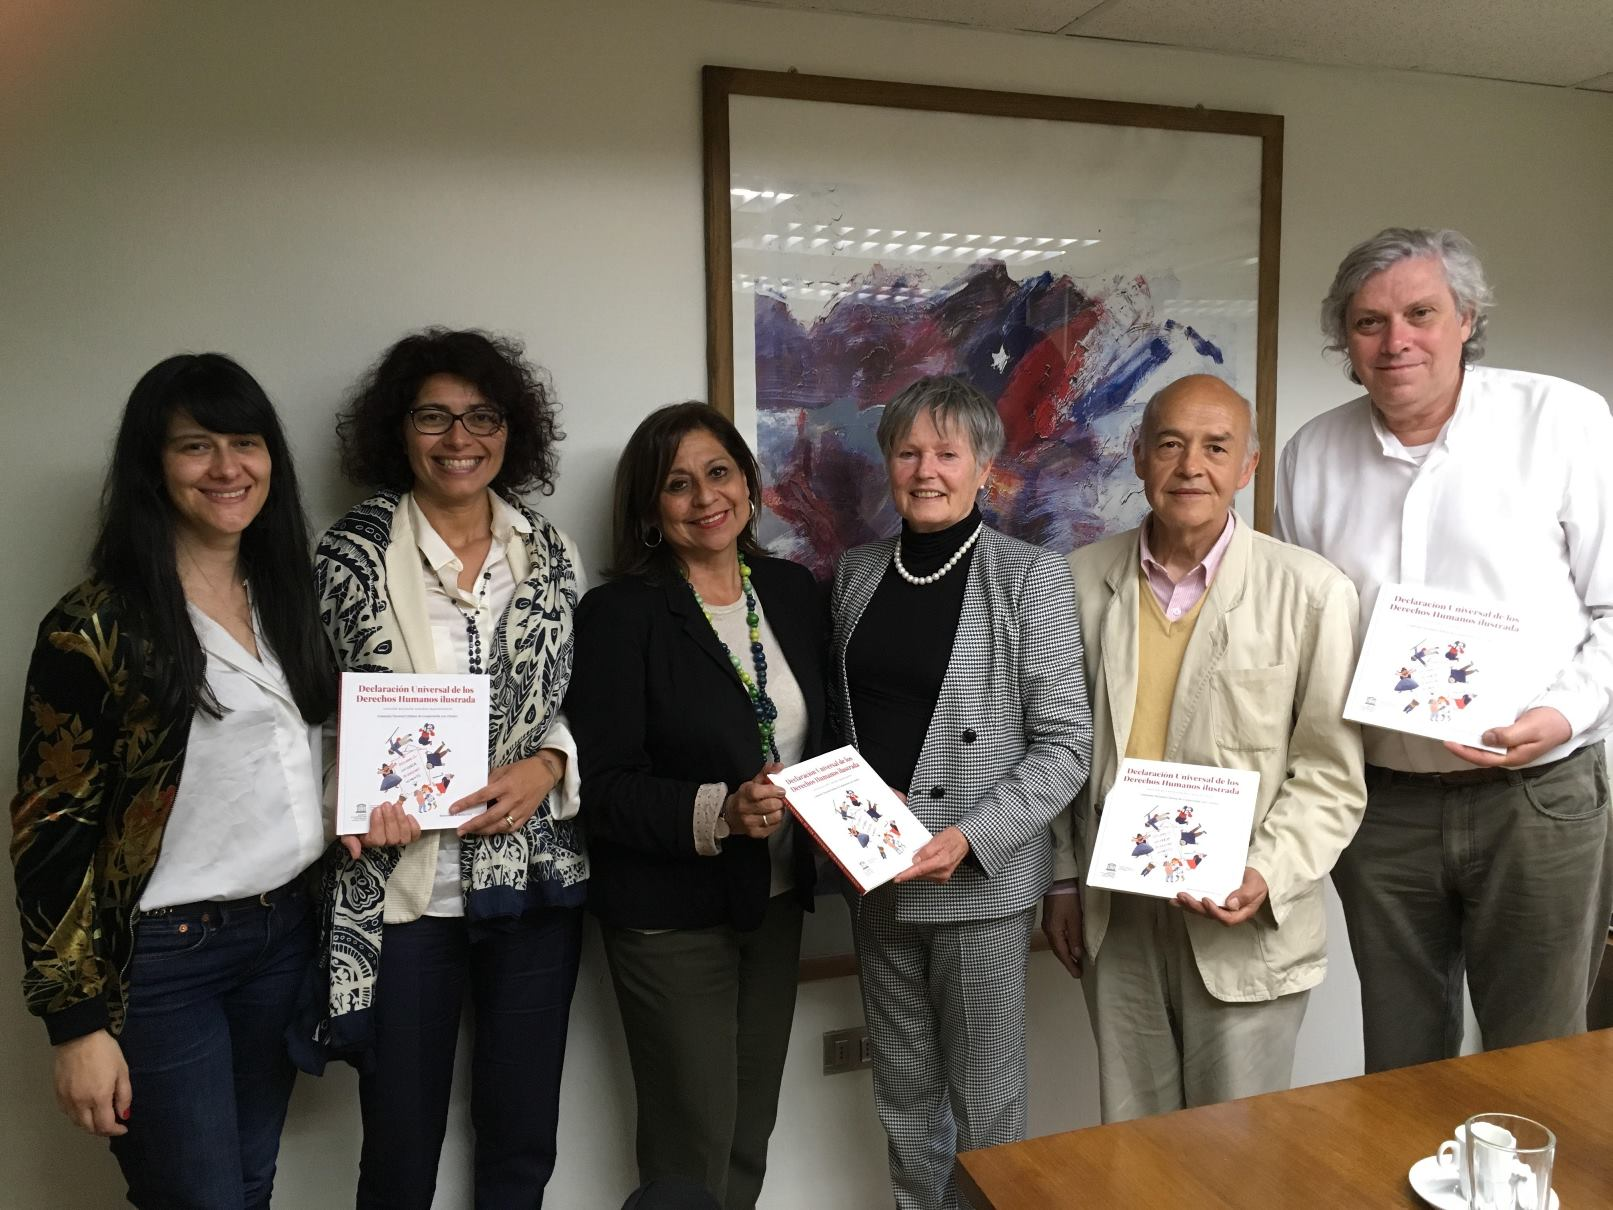 Mme France, Trustee, MSF visits to Ministry of Education , UNESCO National Commission, Santiago, Chile